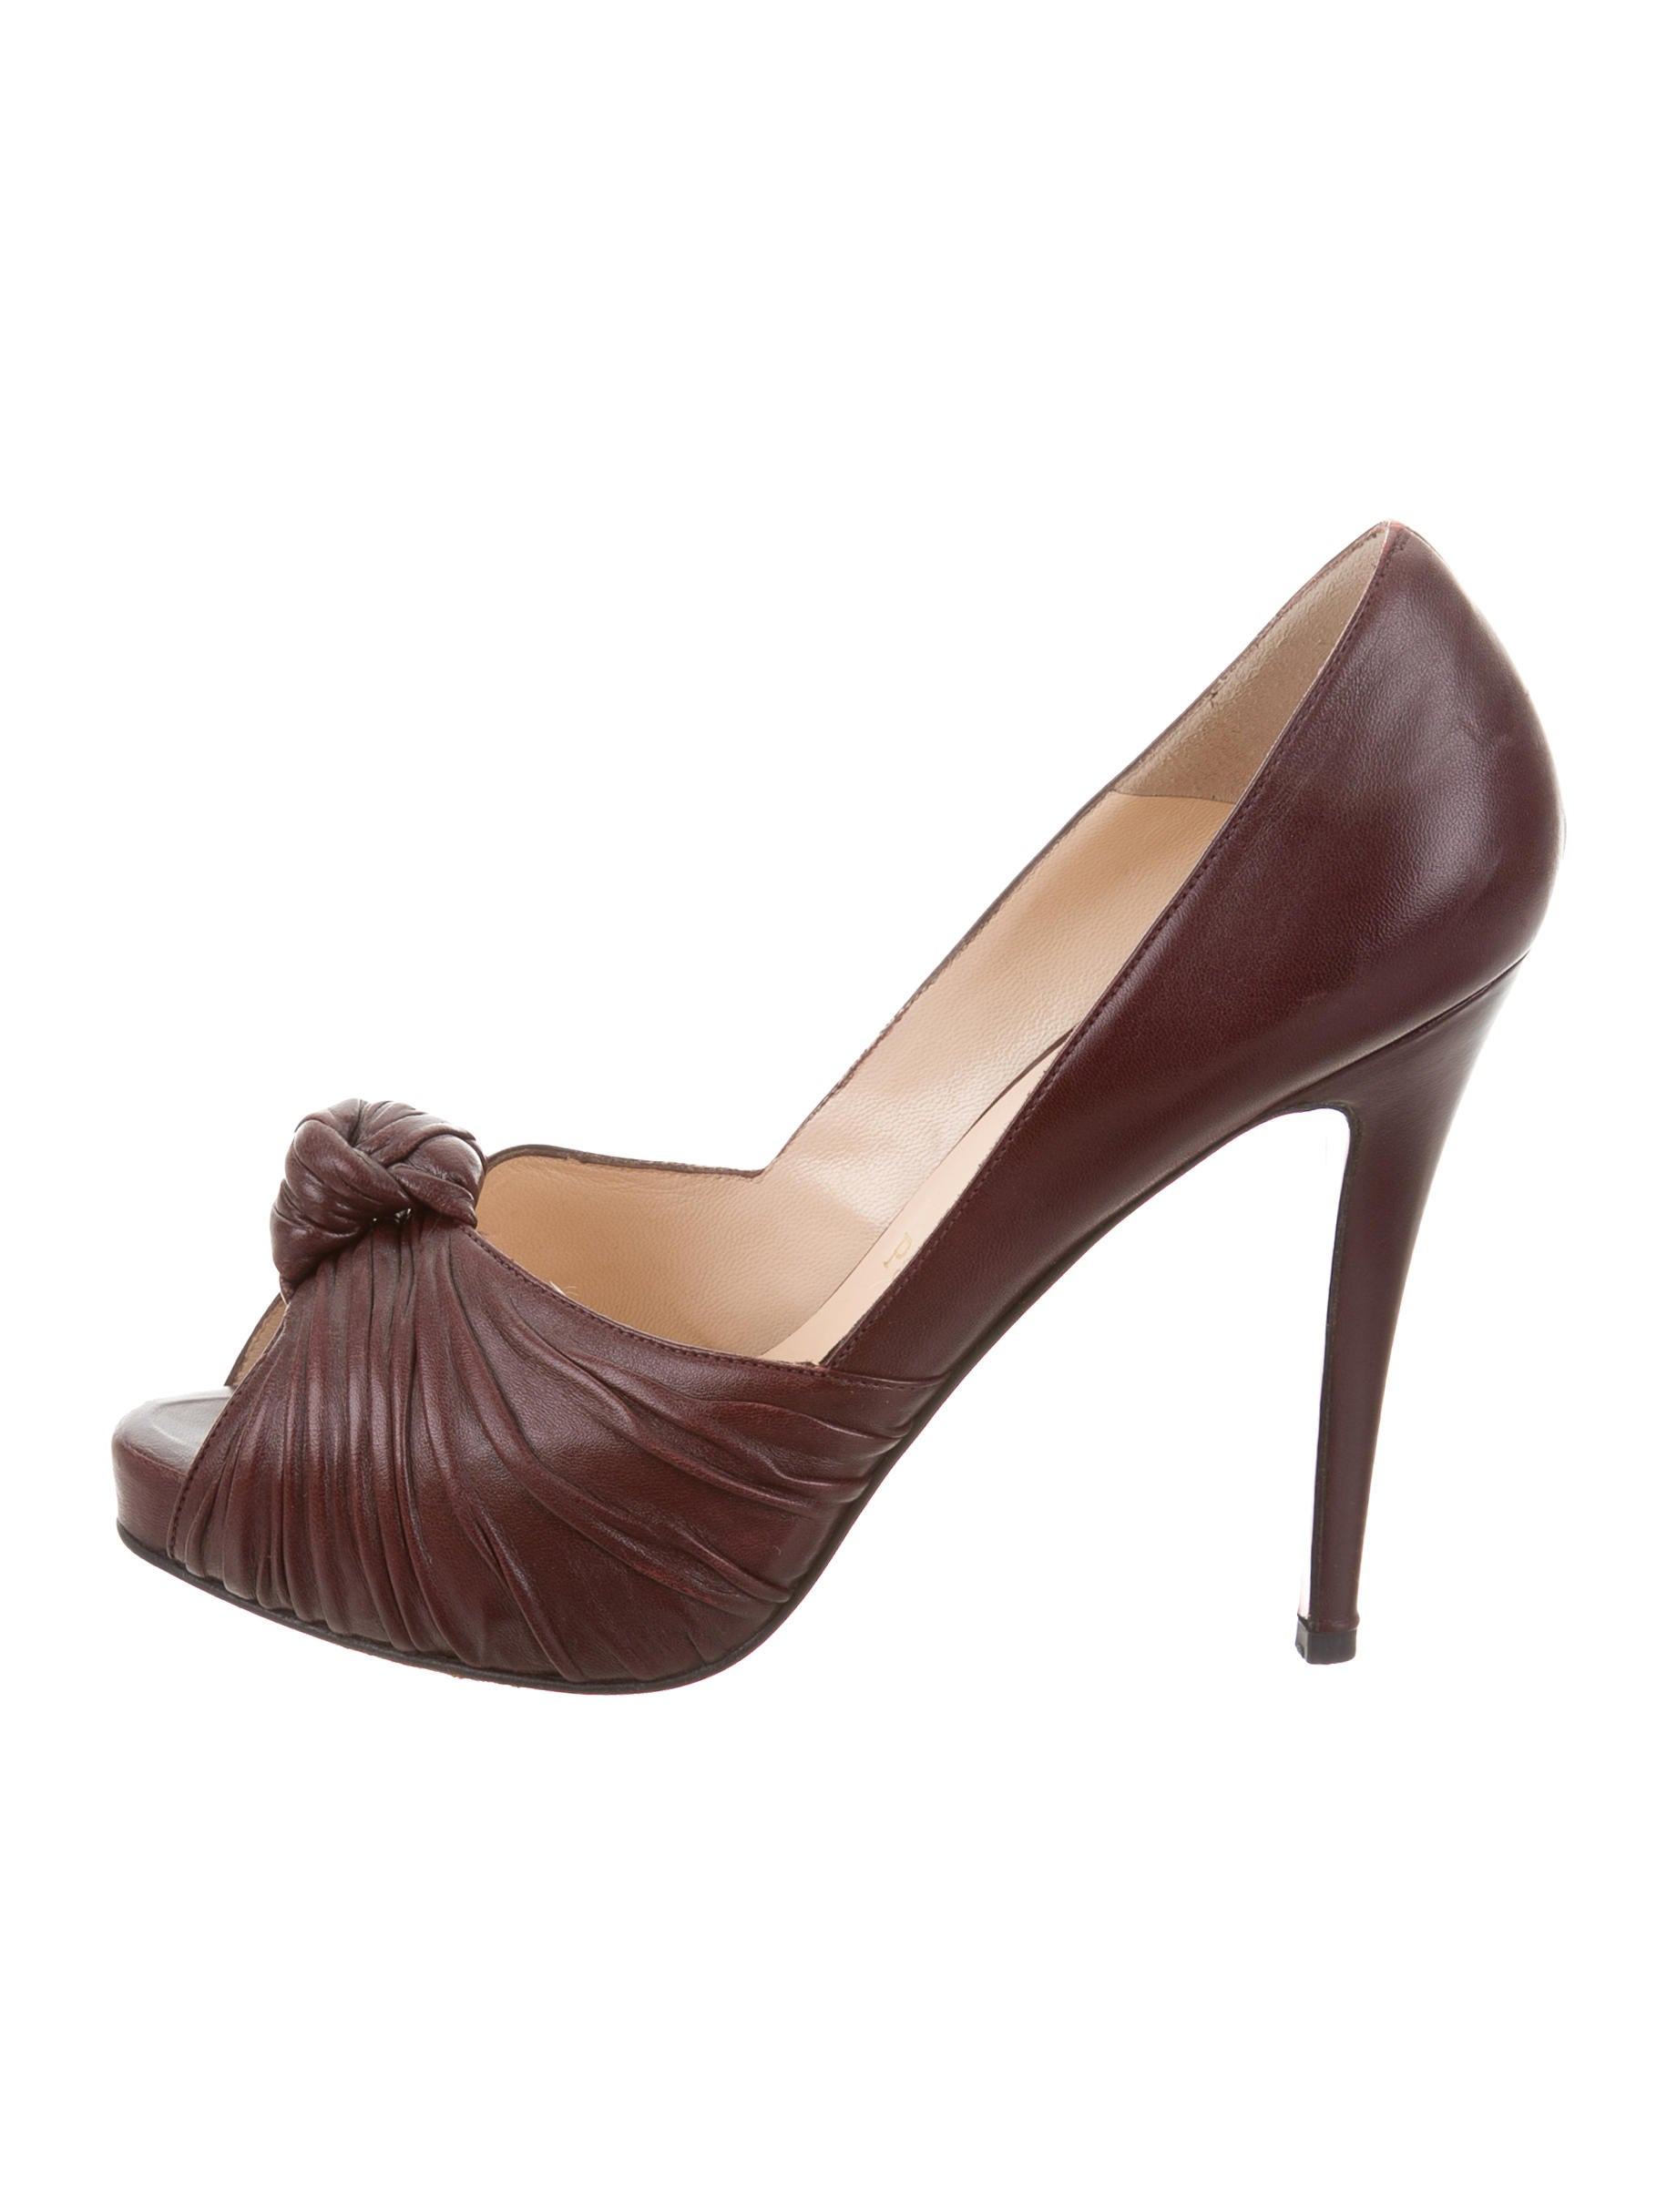 buy cheap pictures Christian Louboutin Gres's Peep-Toe Pumps discount best place 2014 new sale online sale finishline buy cheap wholesale price iBj9J9W86